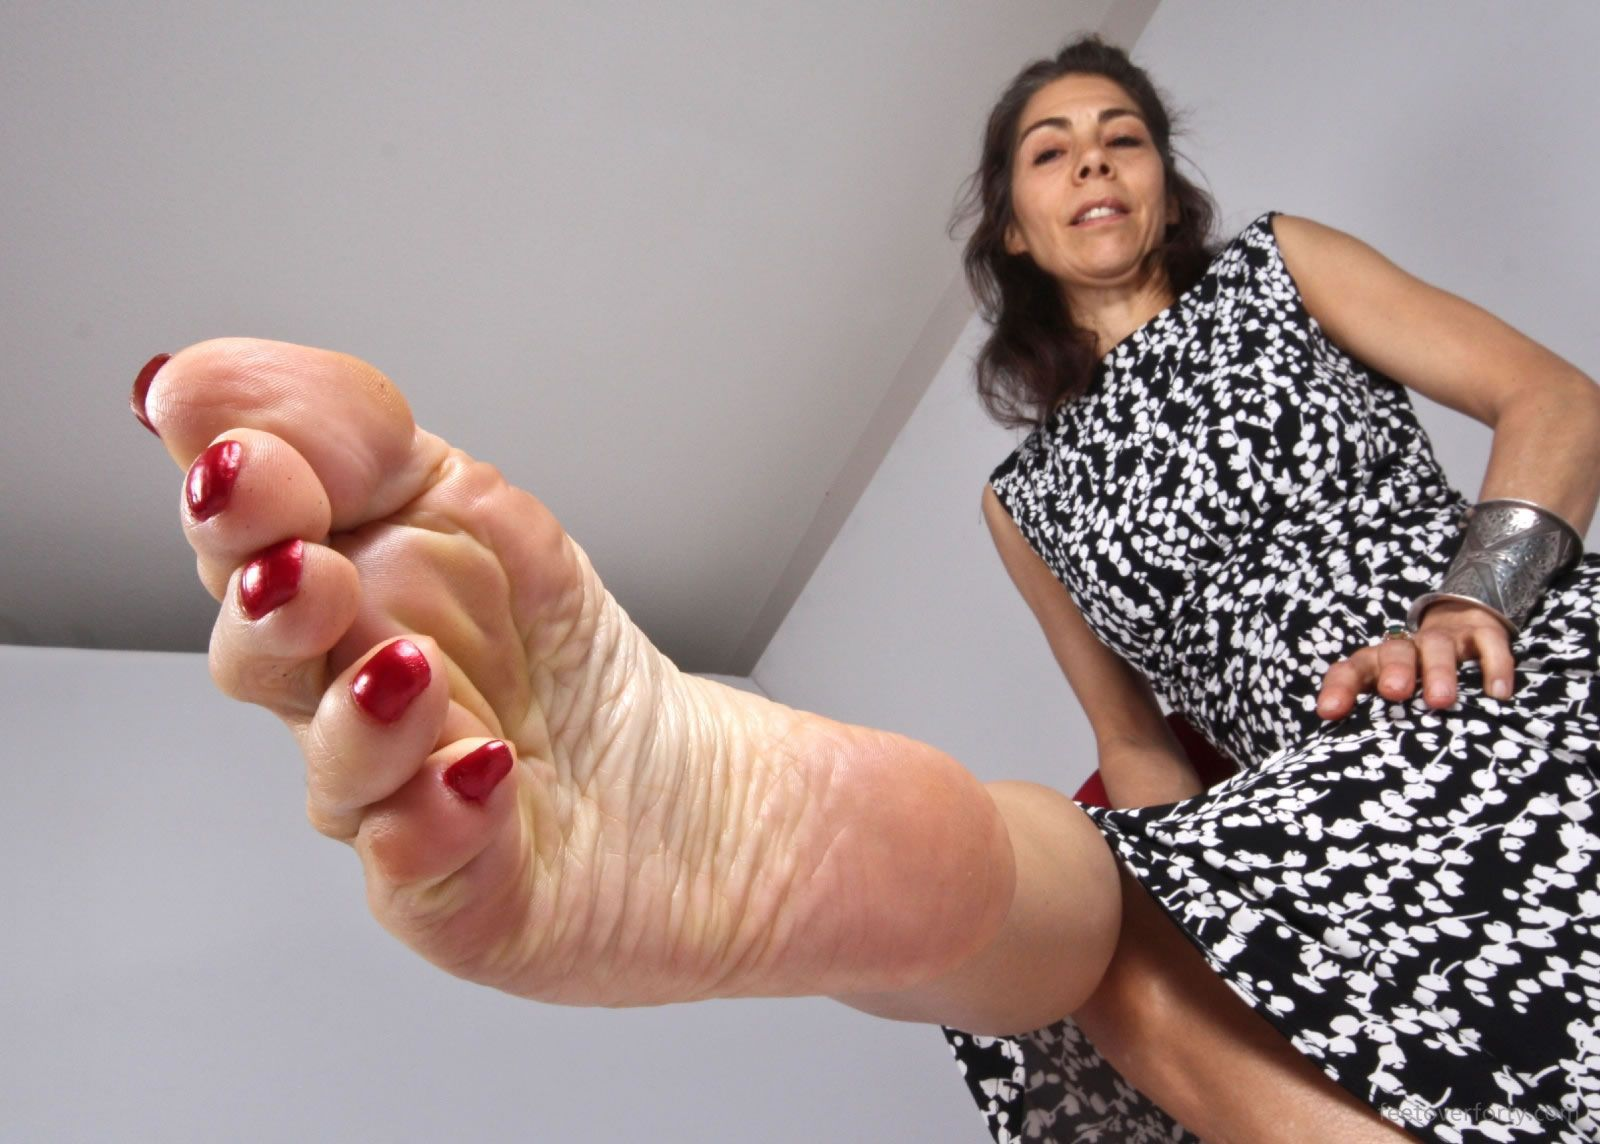 Female Foot Fetish Of Older Women - Naked Photo-2118